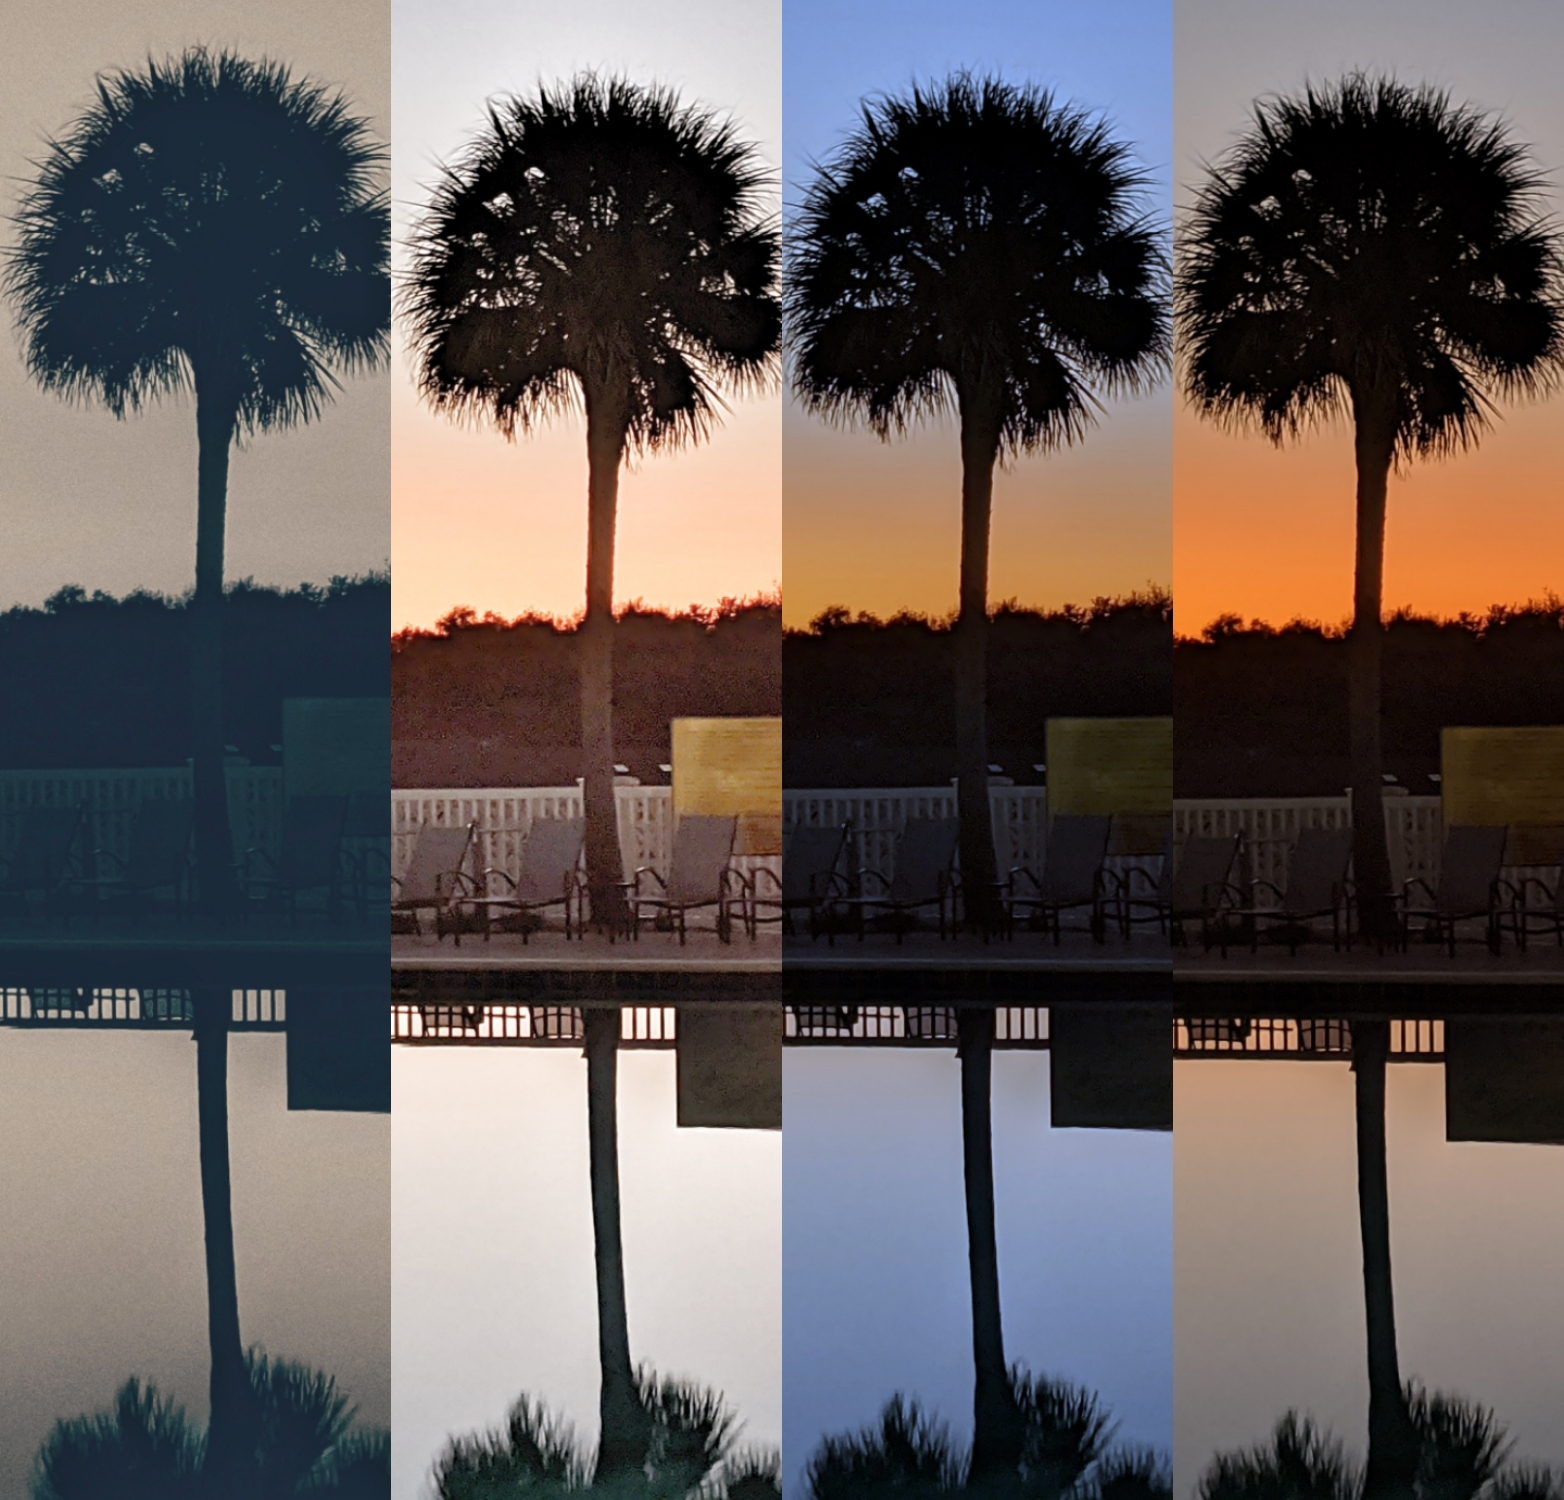 Collage version if palms Pool Sunset, a photo by LensMoments - Nichole Spates